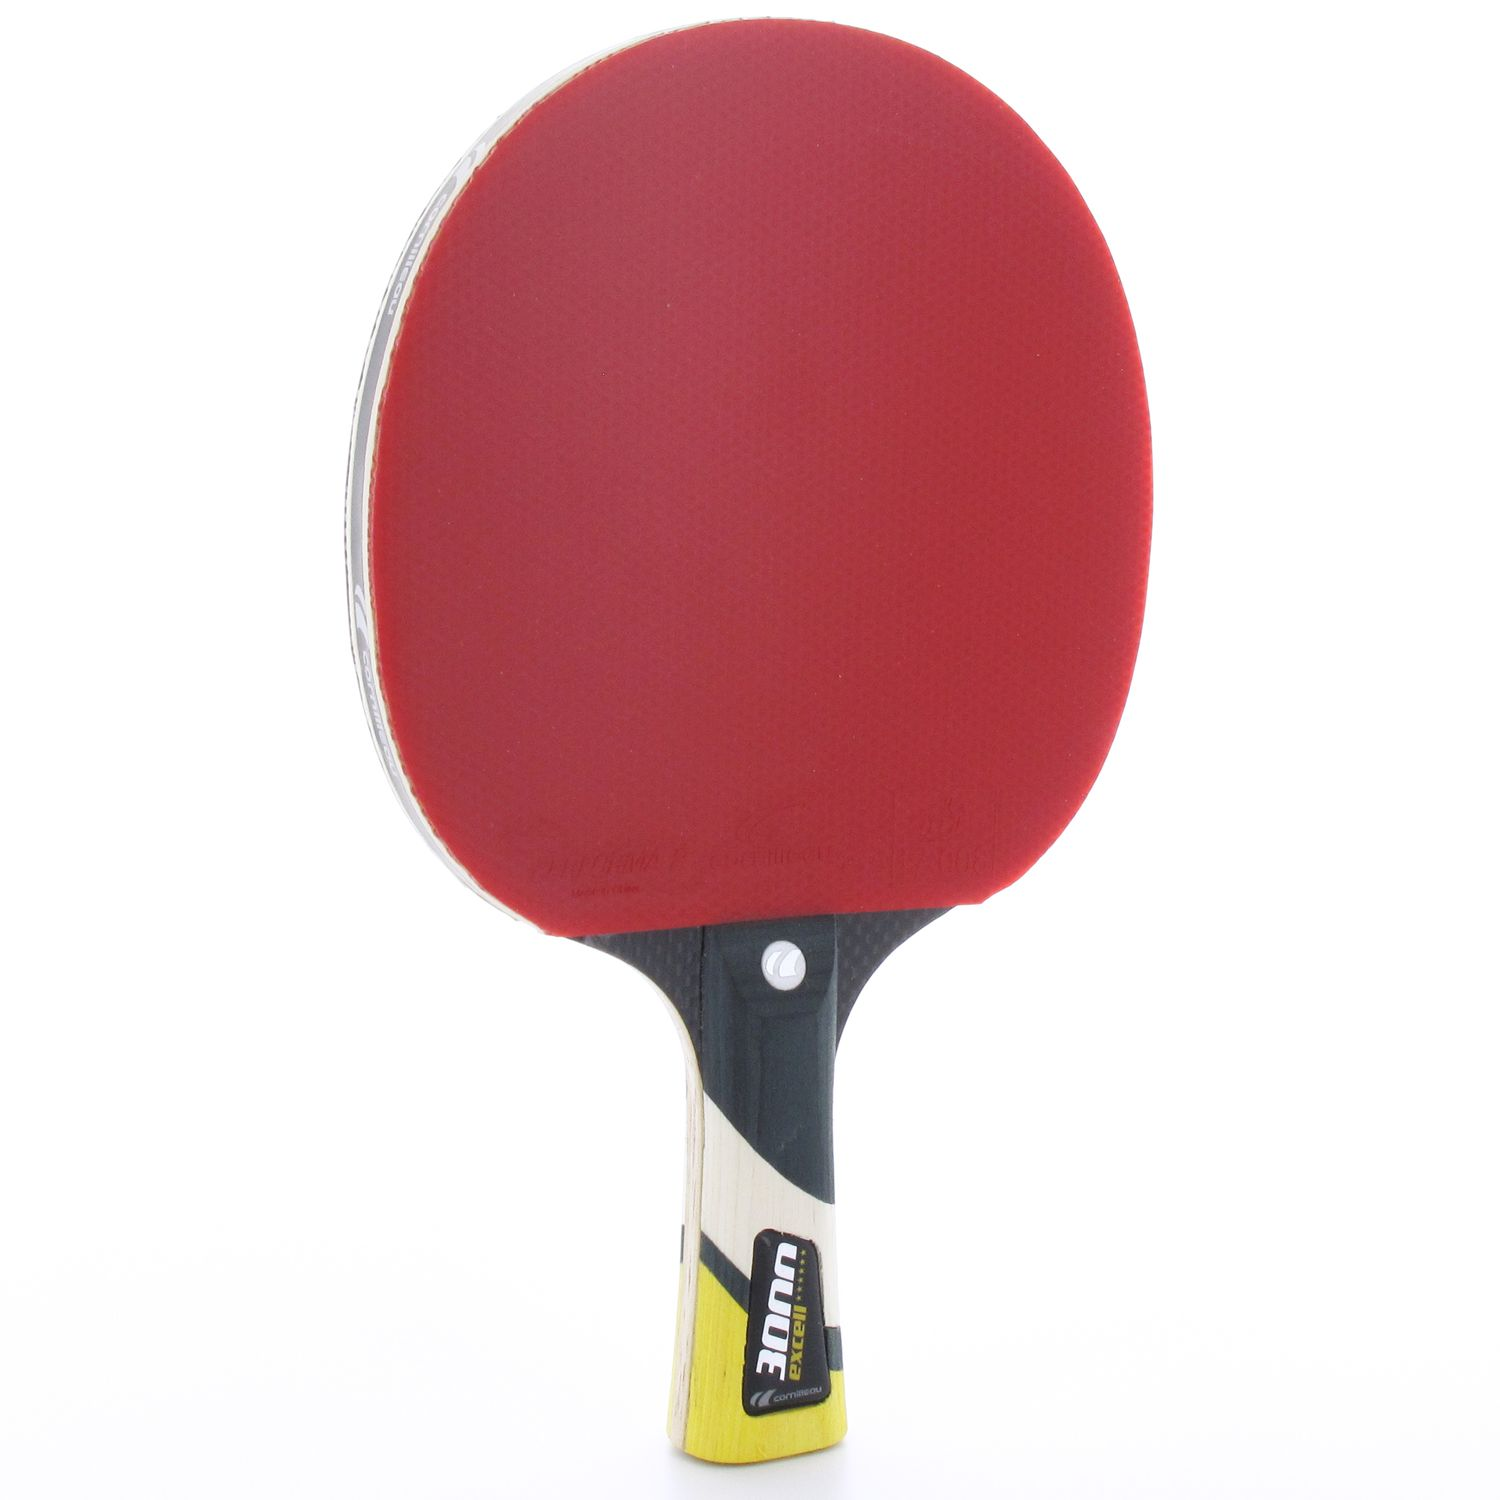 Cornilleau excell 3000 carbon phs performa 2 table tennis bat - Cornilleau table tennis bats ...